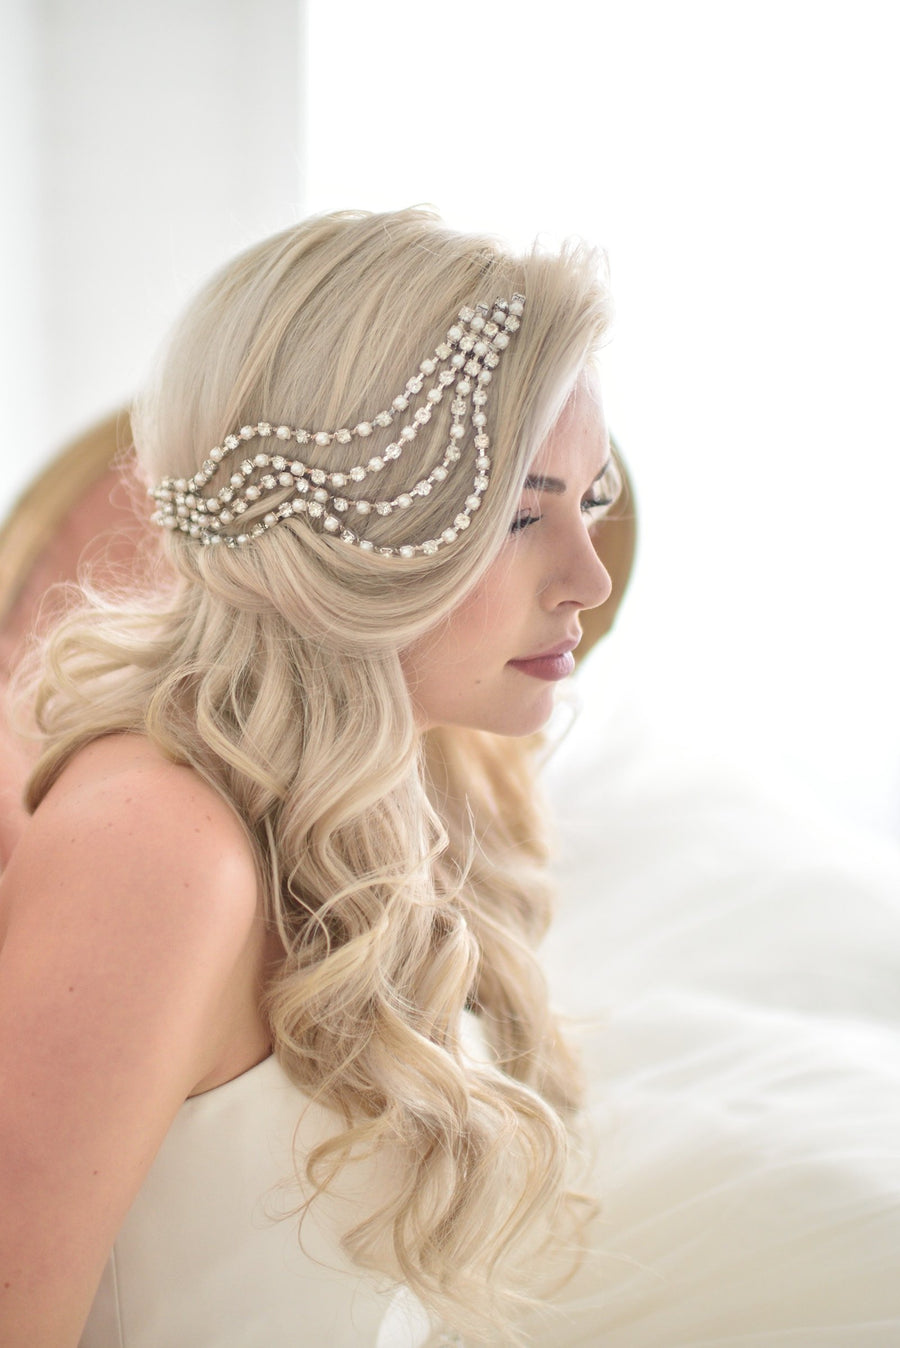 Danani | Ripple Headpiece - Style #201 | Megan Robinson Photography